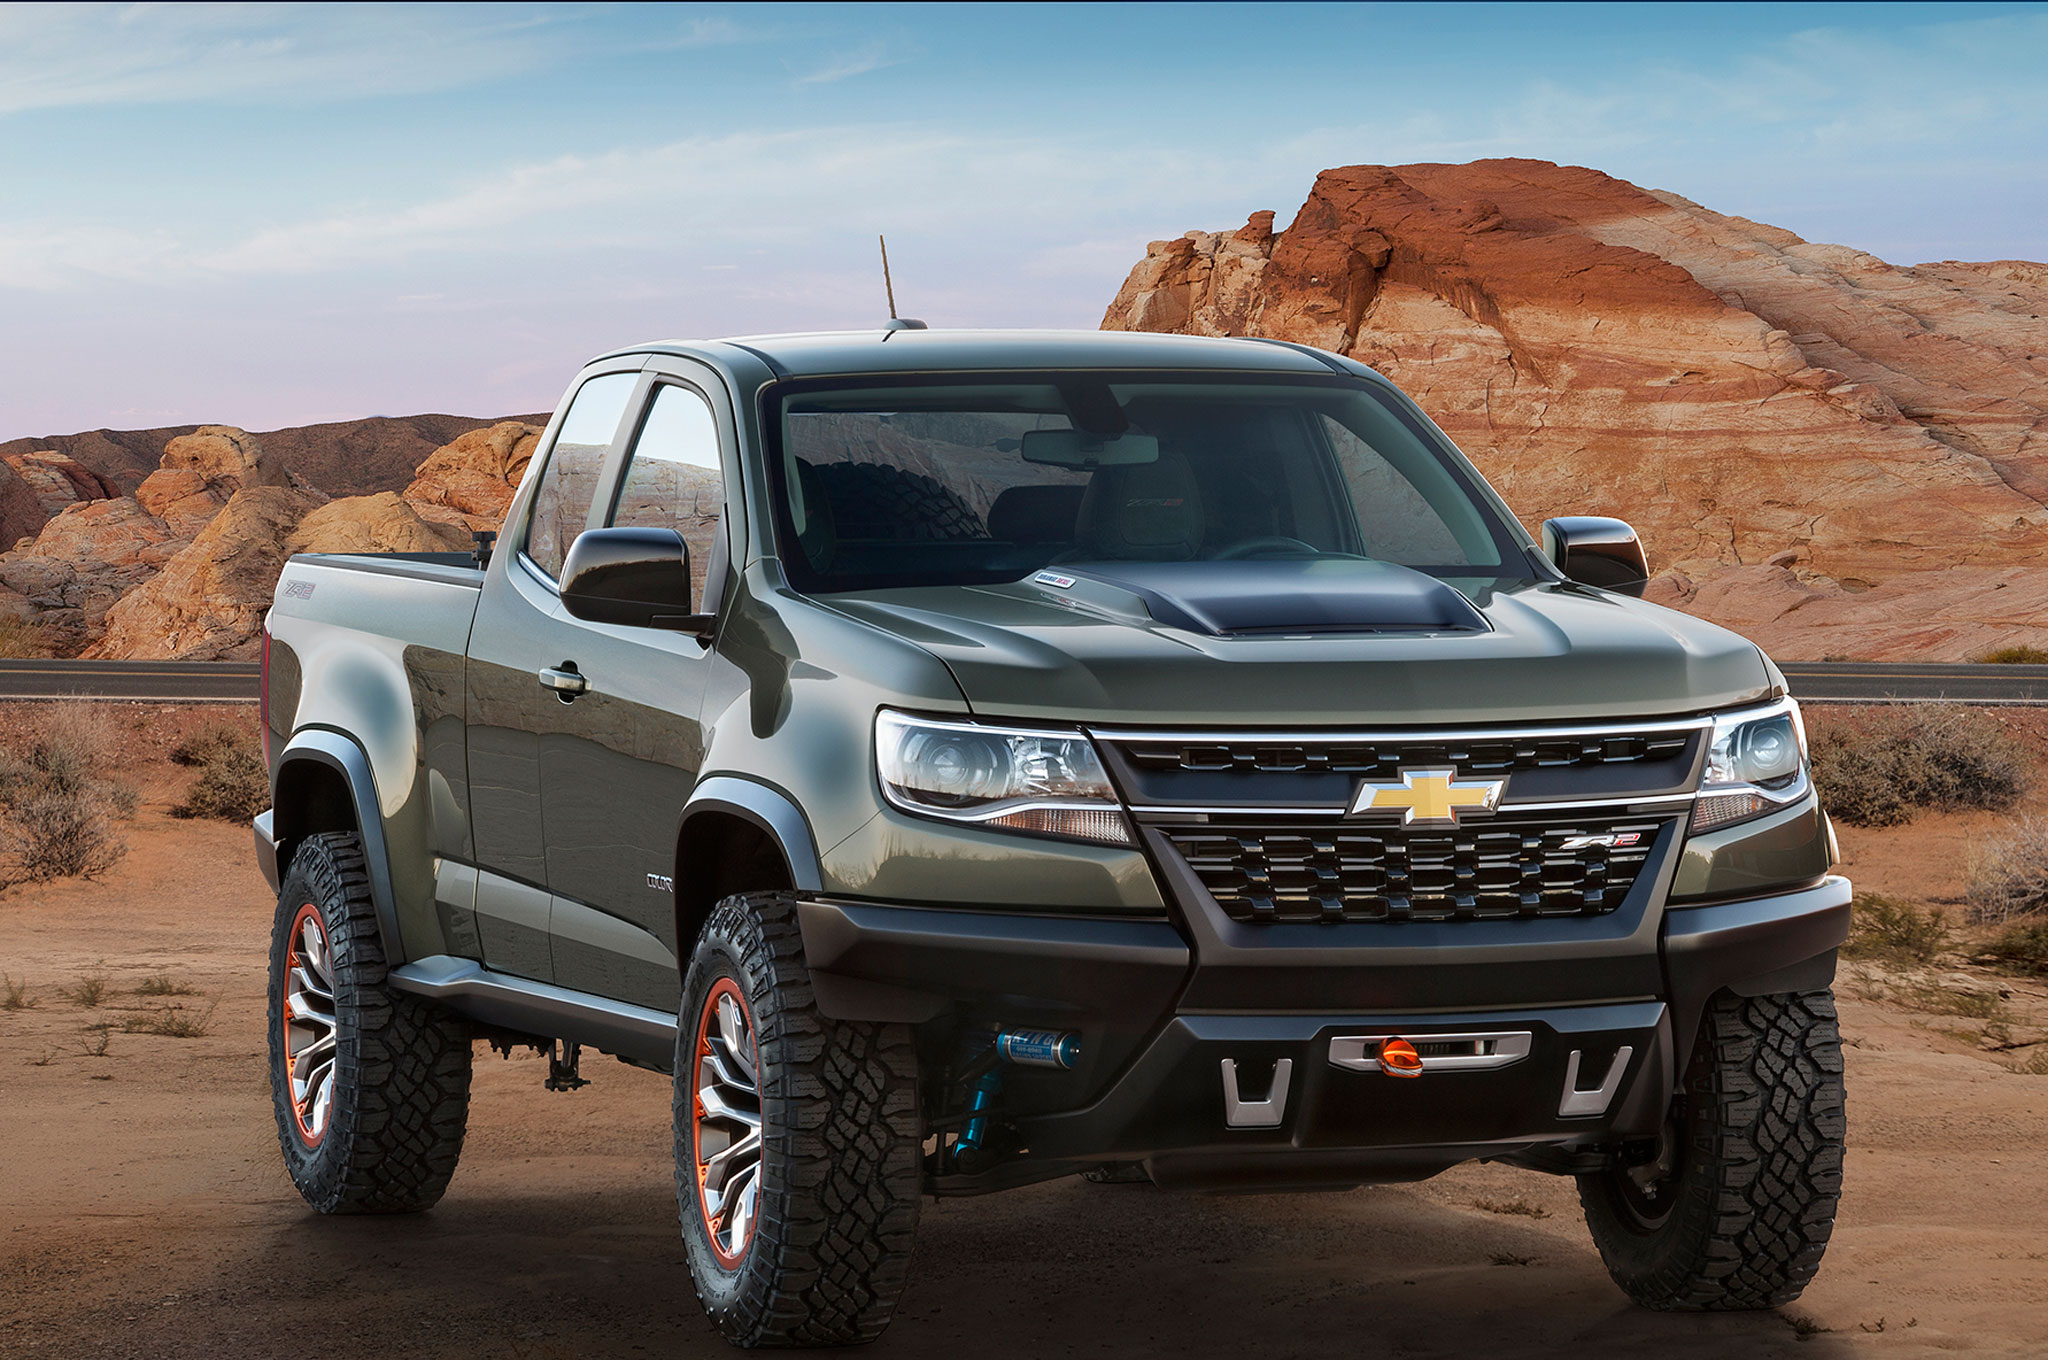 2017 Chevrolet Colorado Zr2 Concept